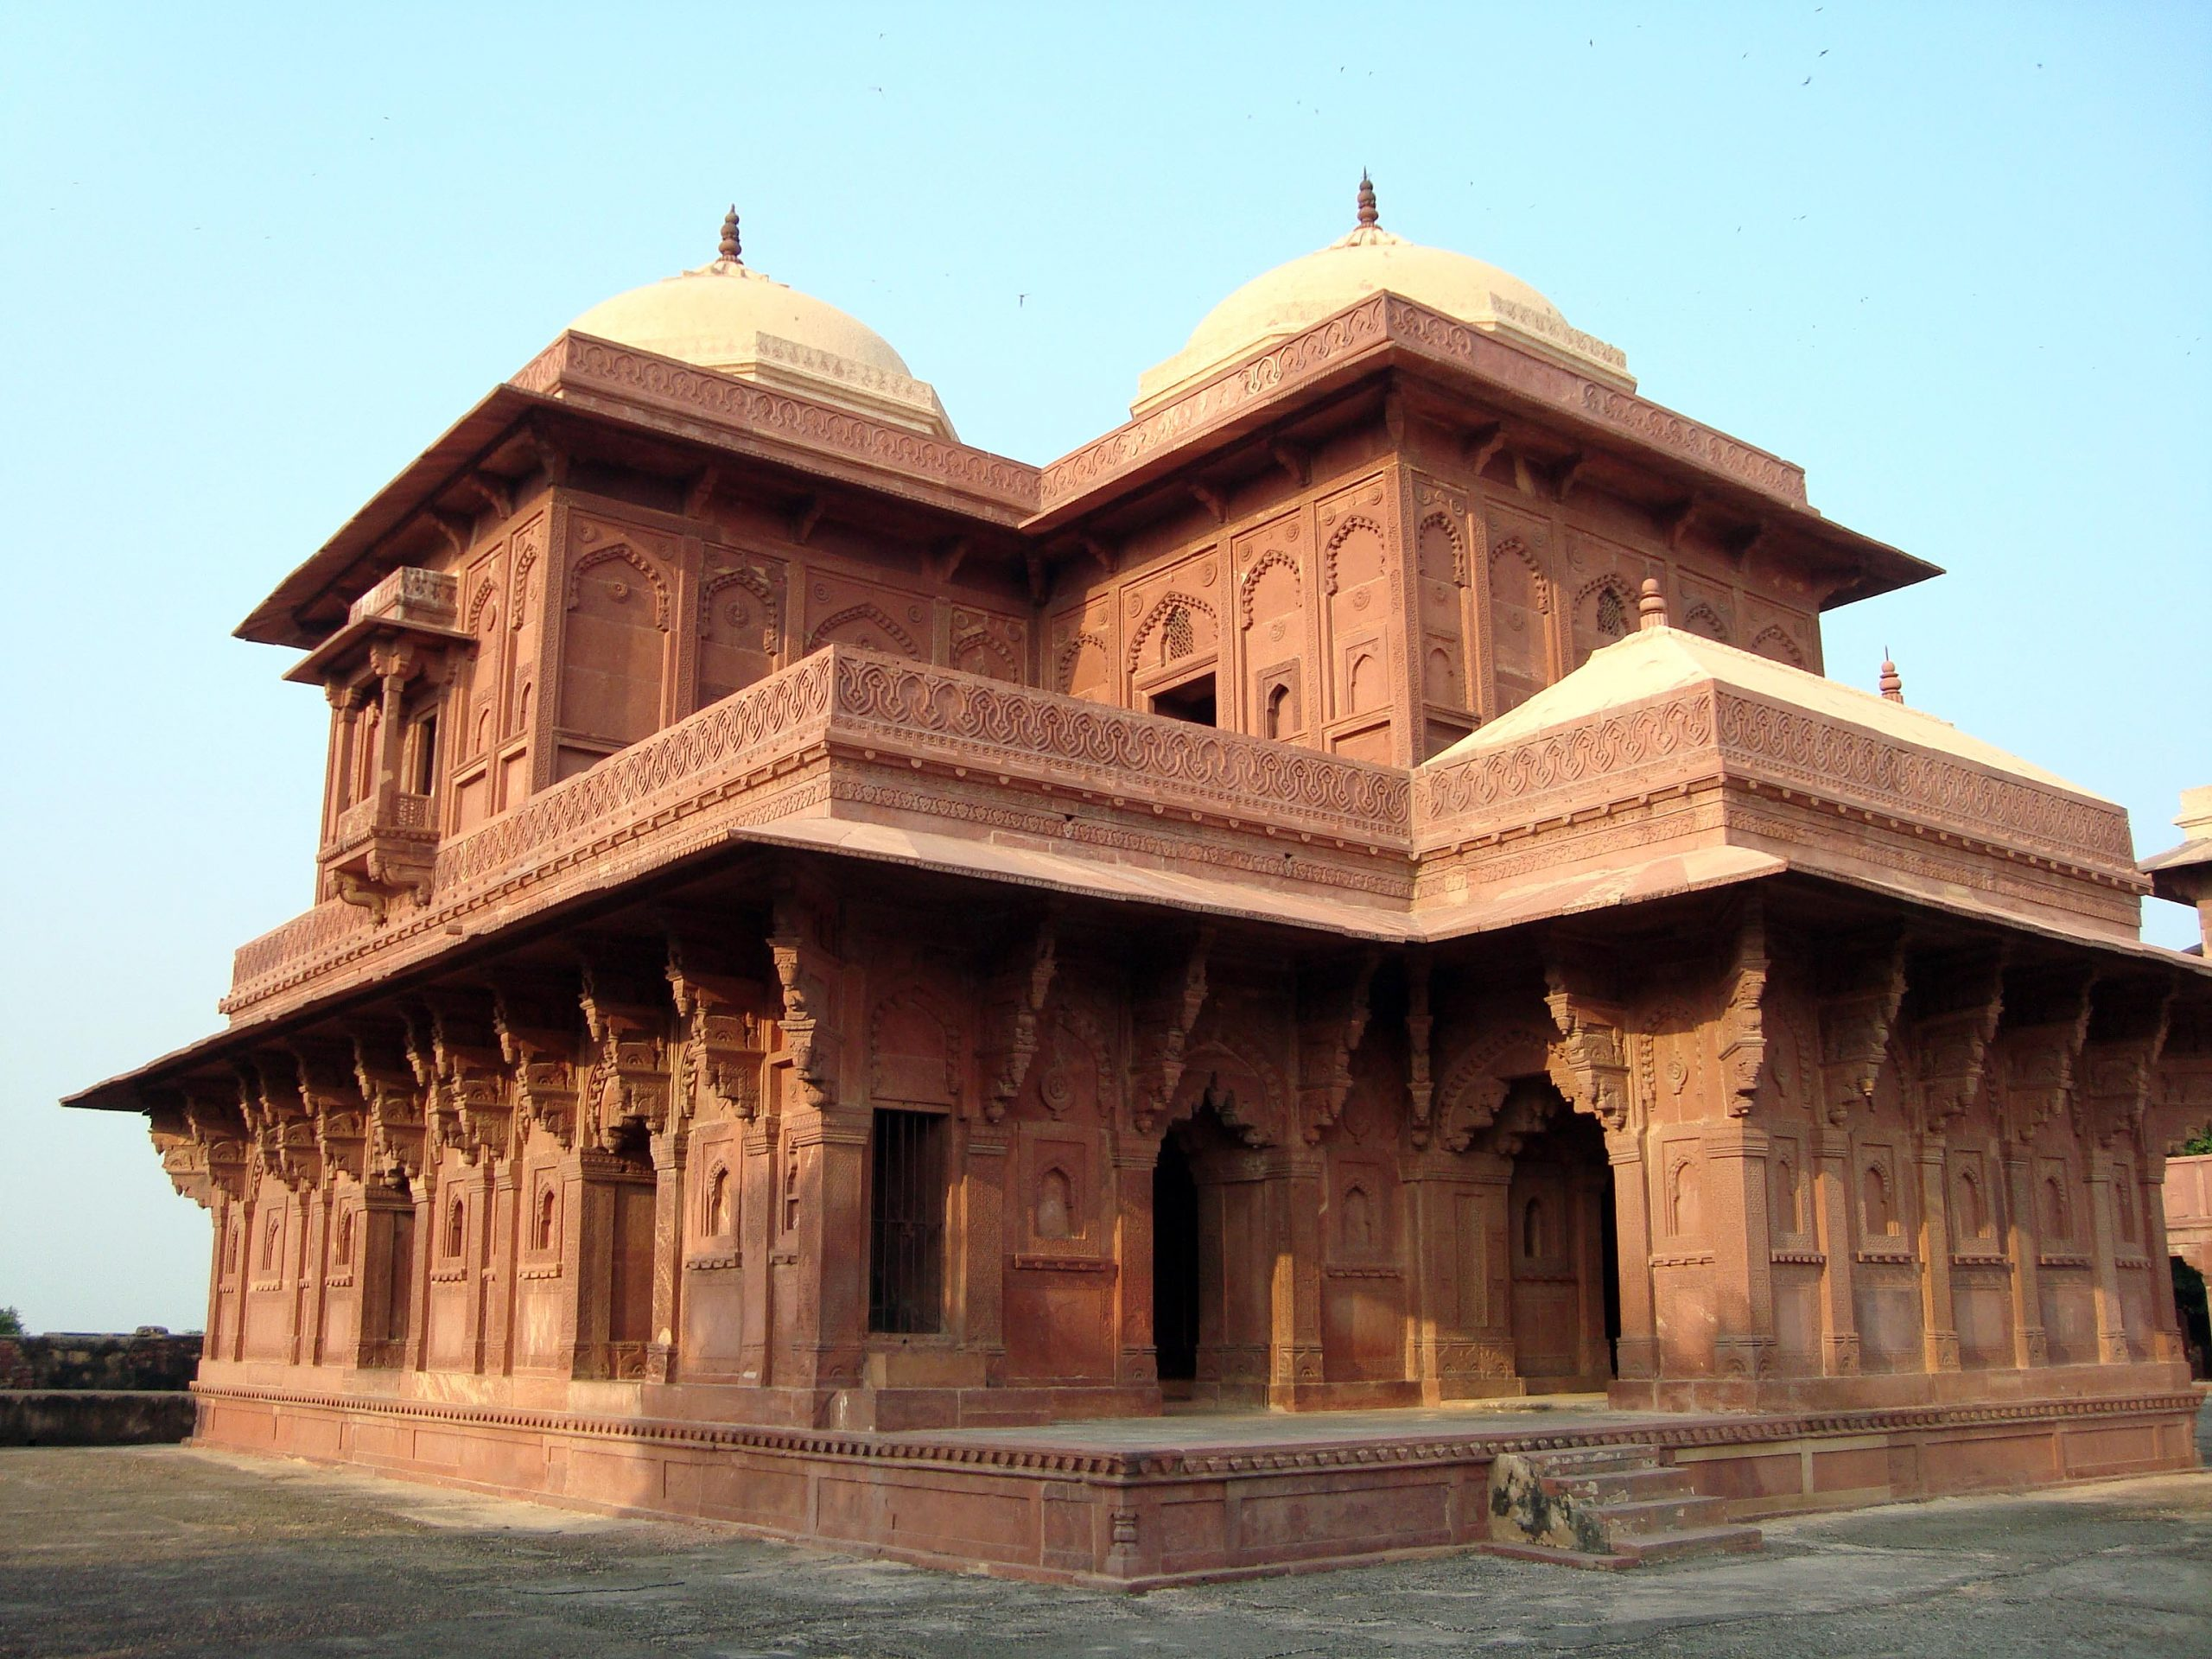 Best Visiting Place in Fatehpur Sikri-Birbal's Palace